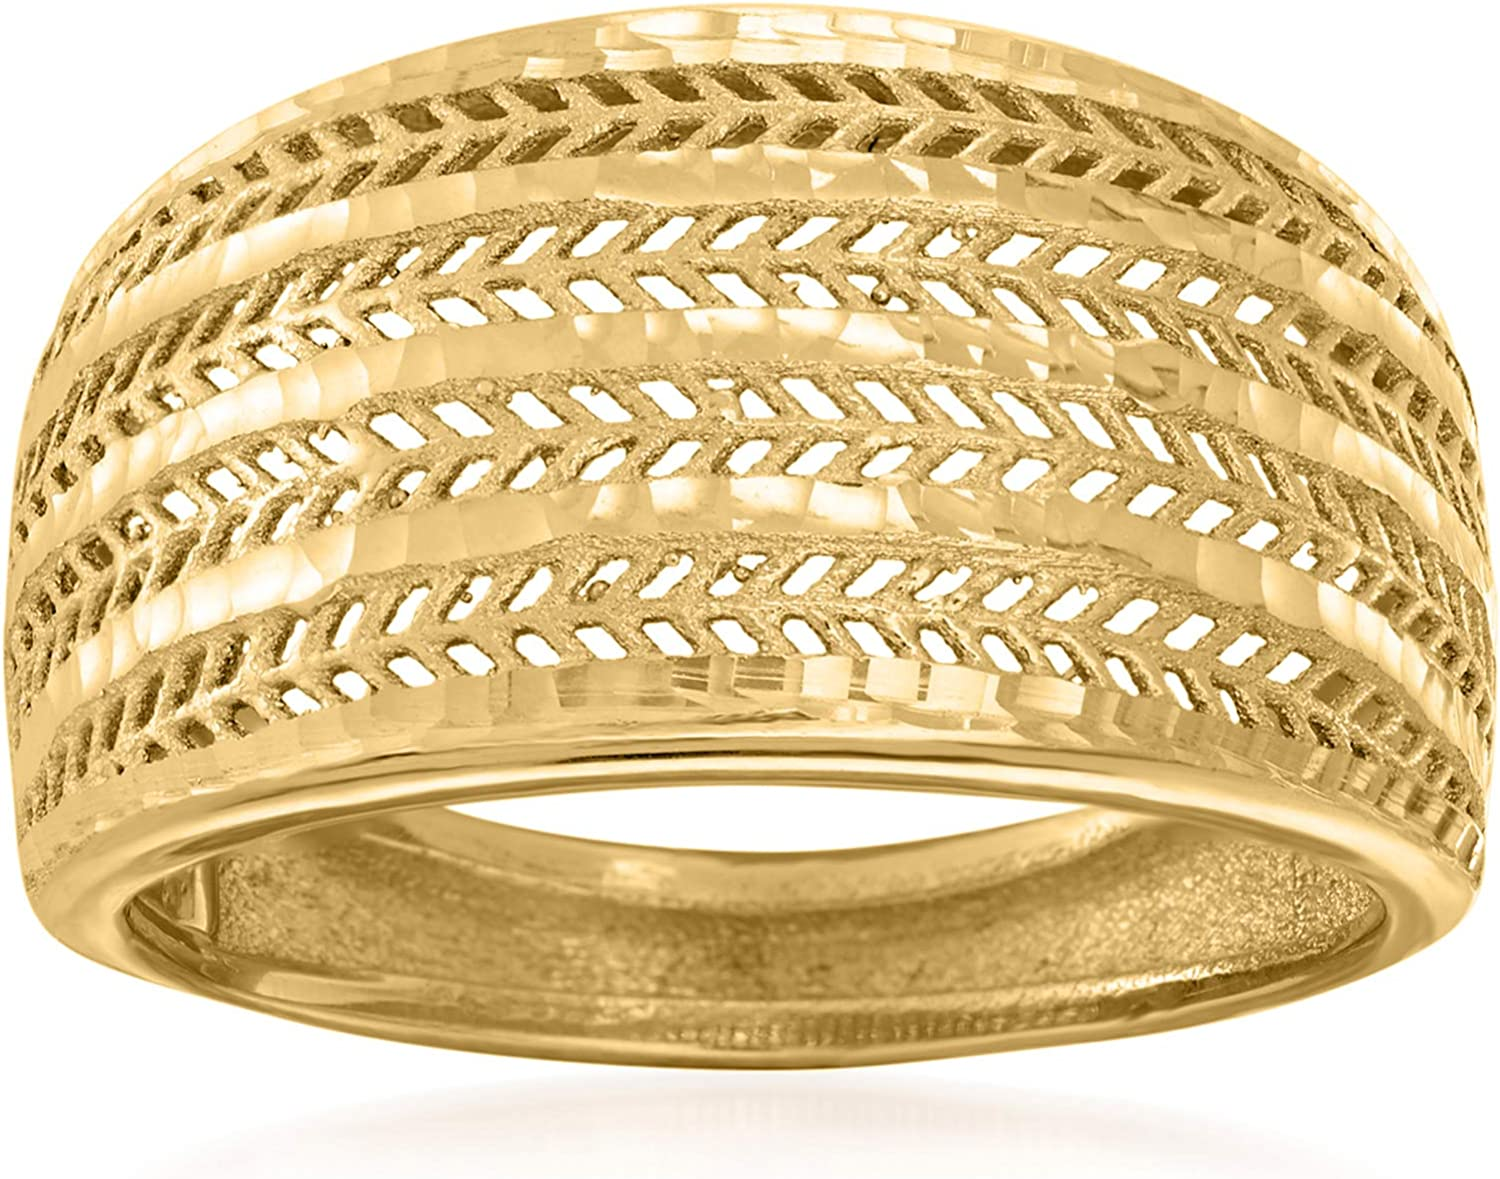 Ross-Simons Italian 18kt Yellow Gold Textured and Polished Ring